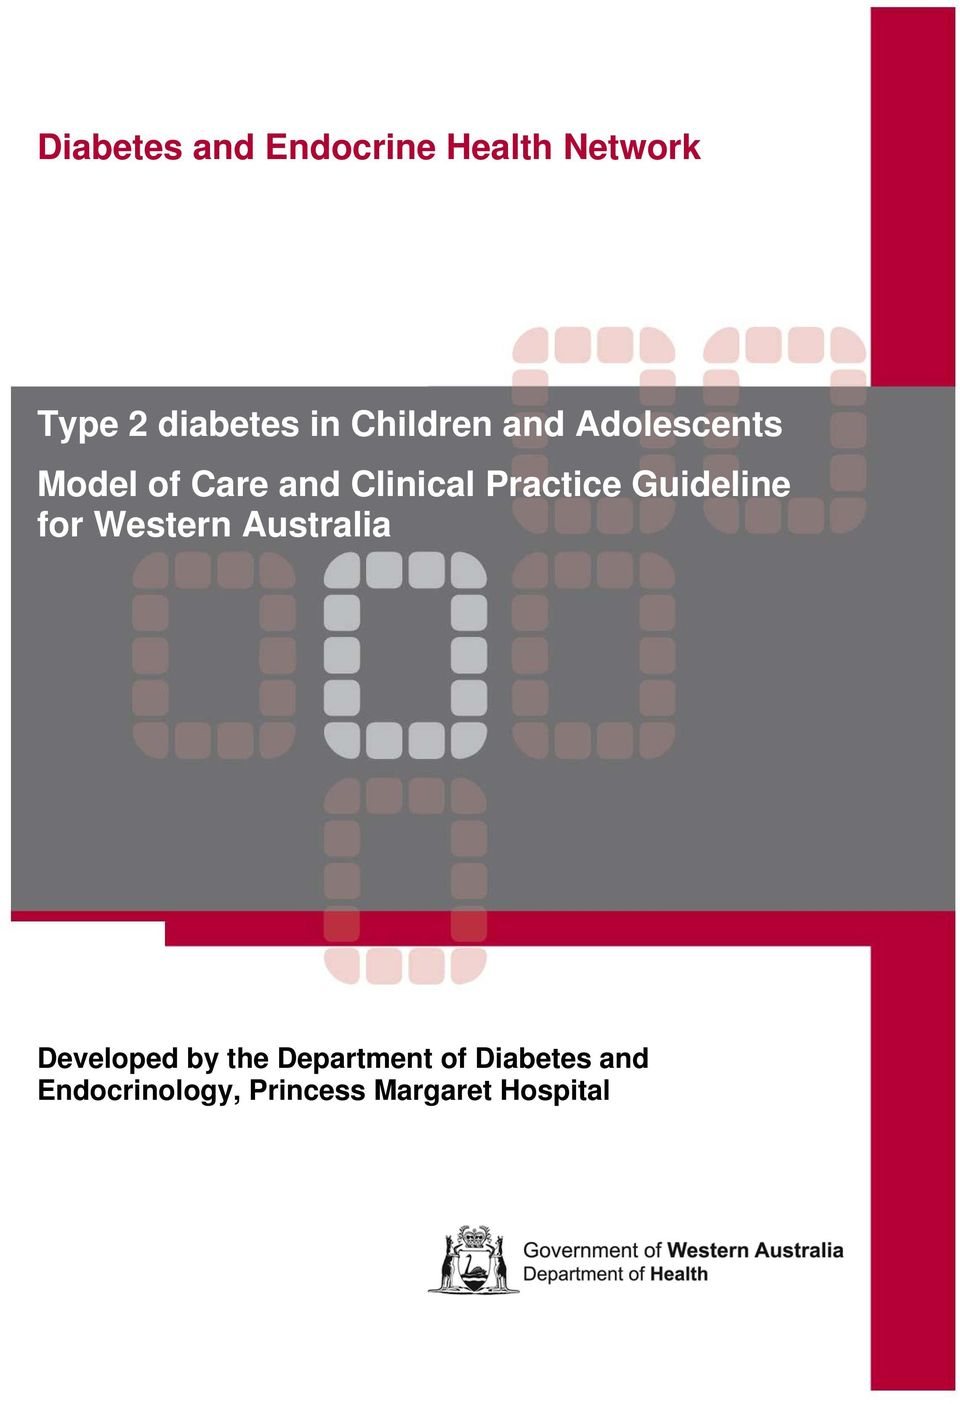 Practice Guideline for Western Australia Developed by the